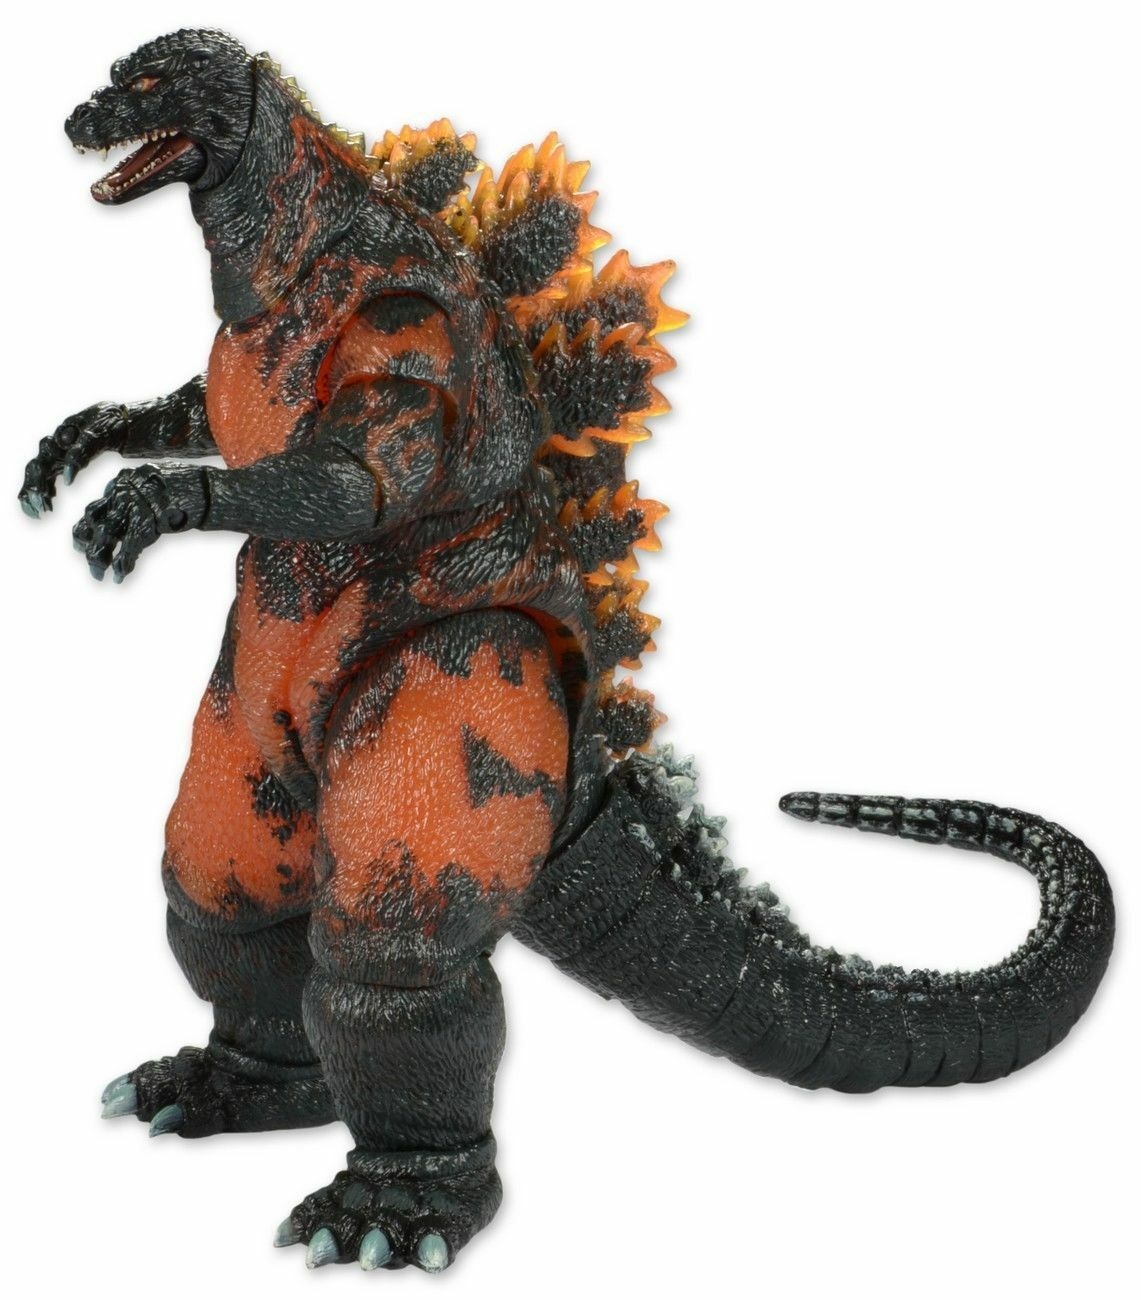 NECA Godzilla Vs Destroyah Burning Godzilla Action Figure NEW